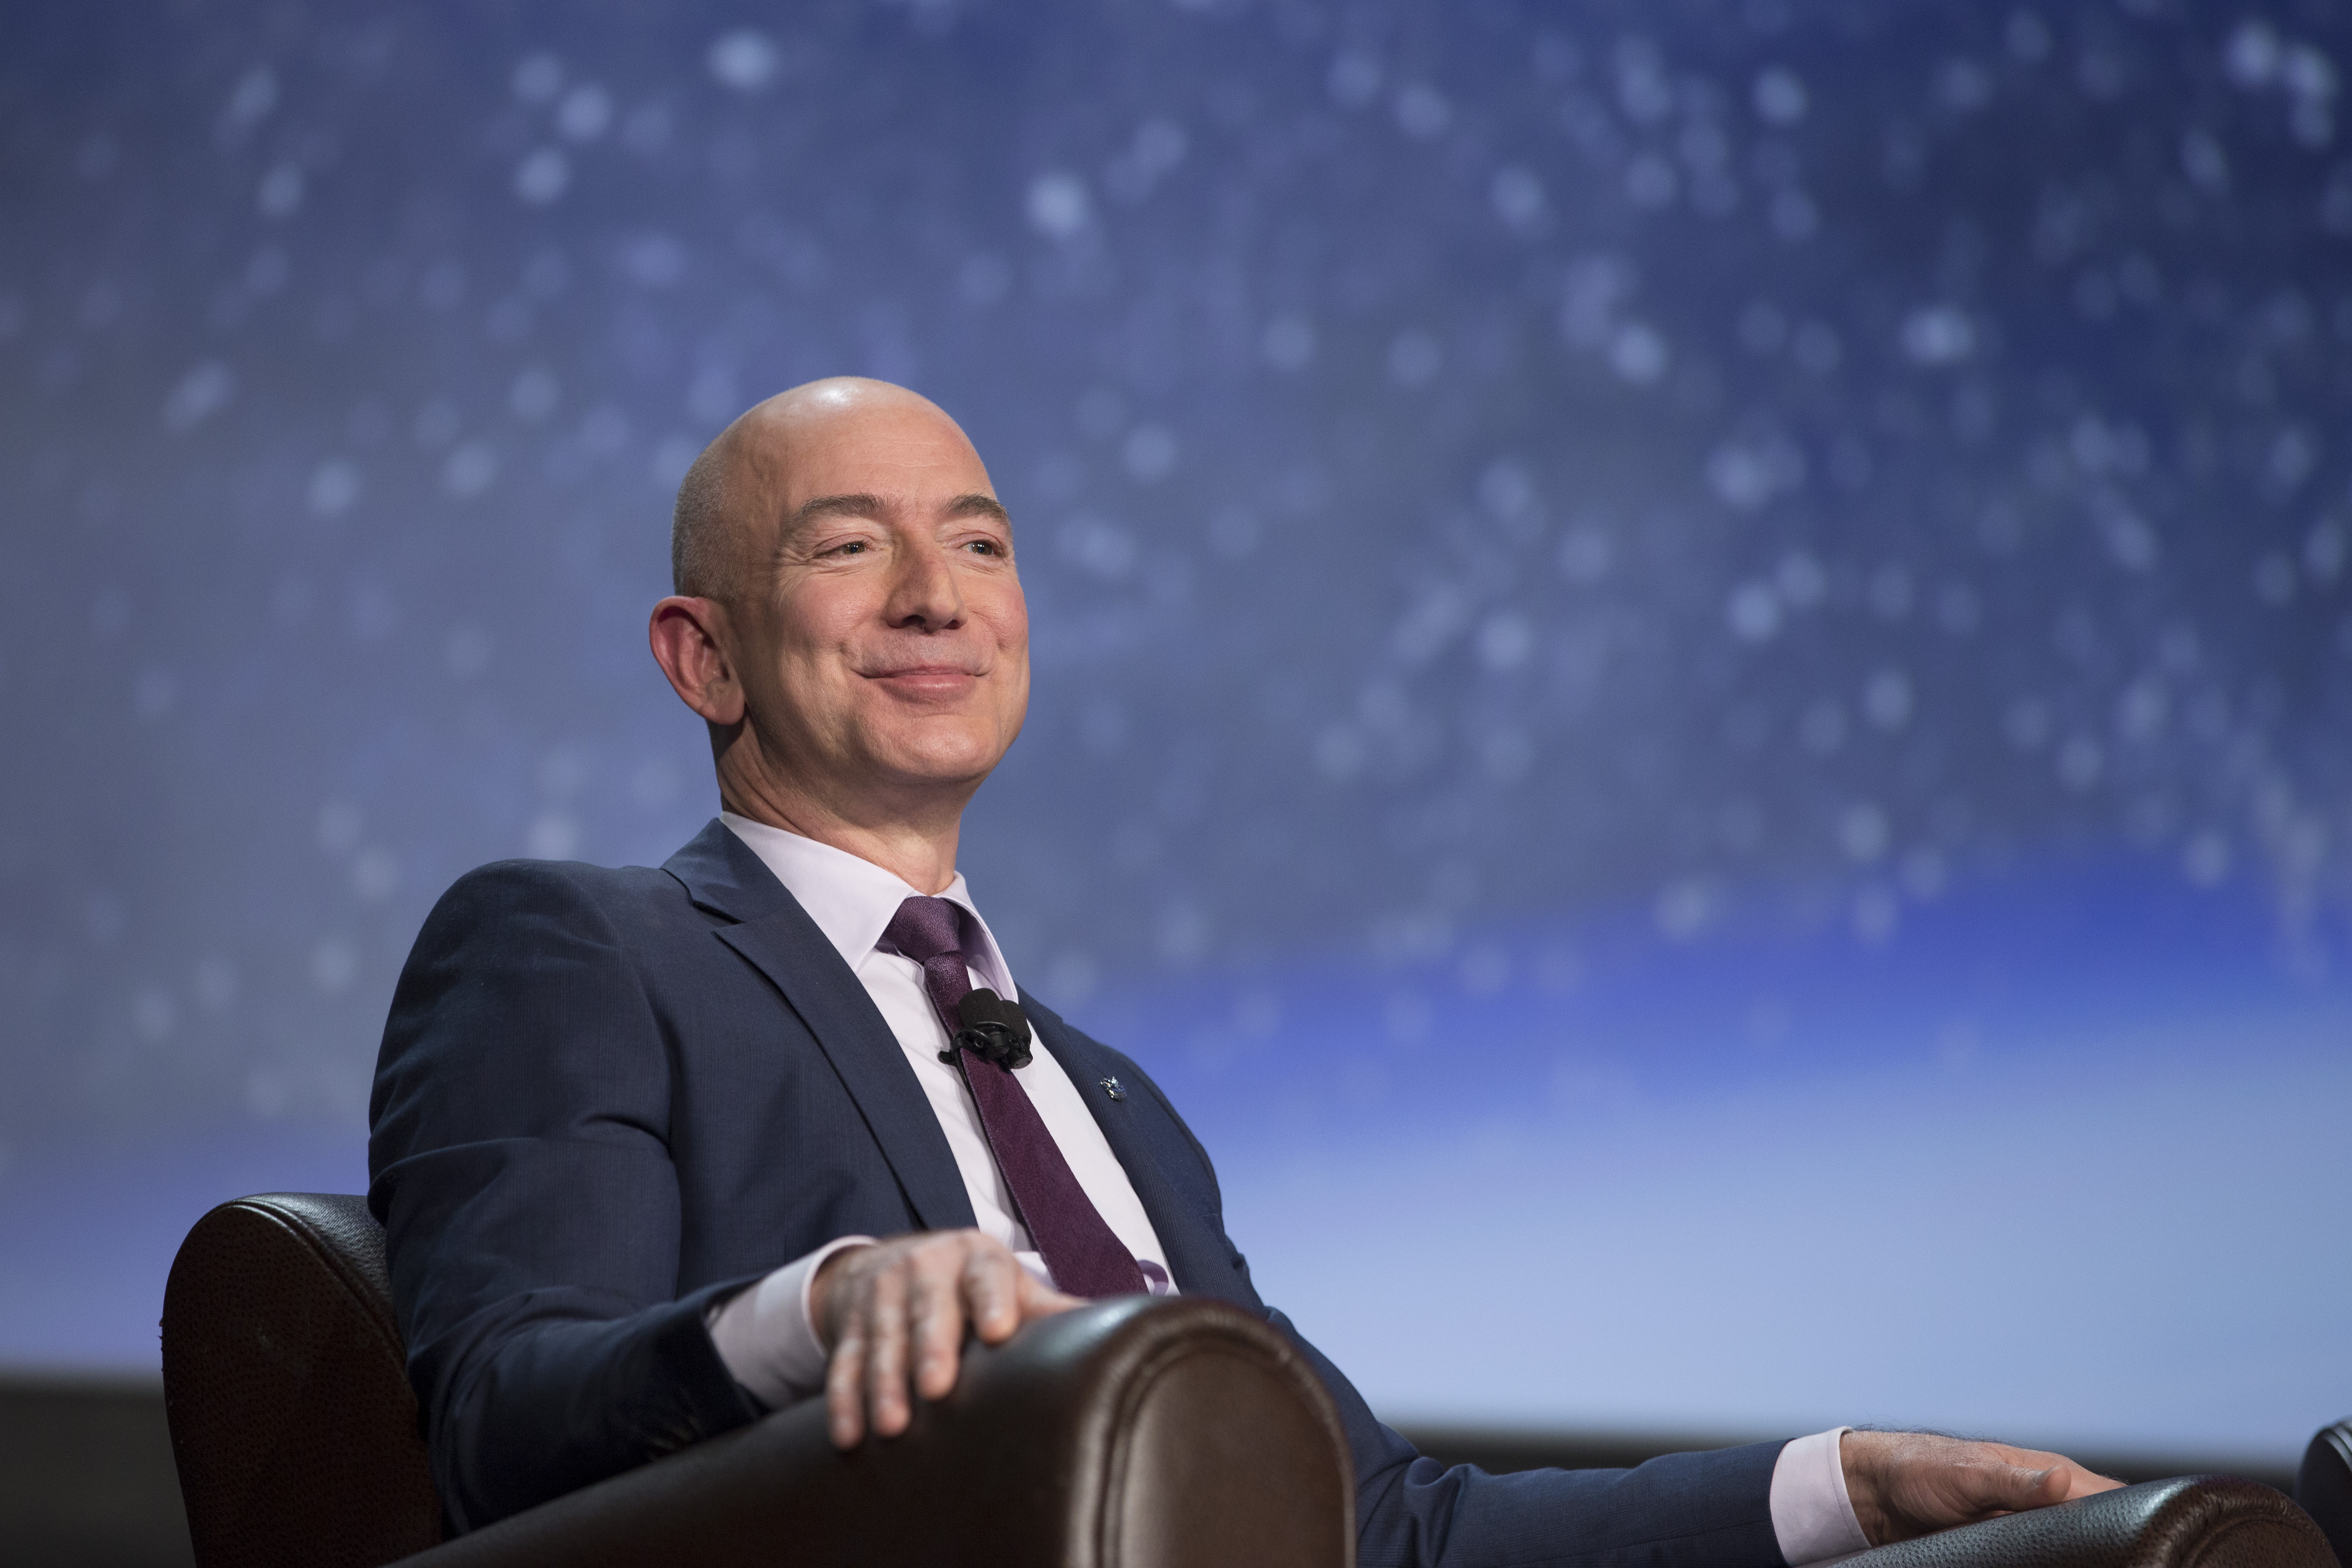 Jeff Bezos, chief executive officer of Amazon.com Inc. and founder of Blue Origin LLC, smiles during the 32nd Space Symposium in Colorado Springs, Colorado, on April 12, 2016.